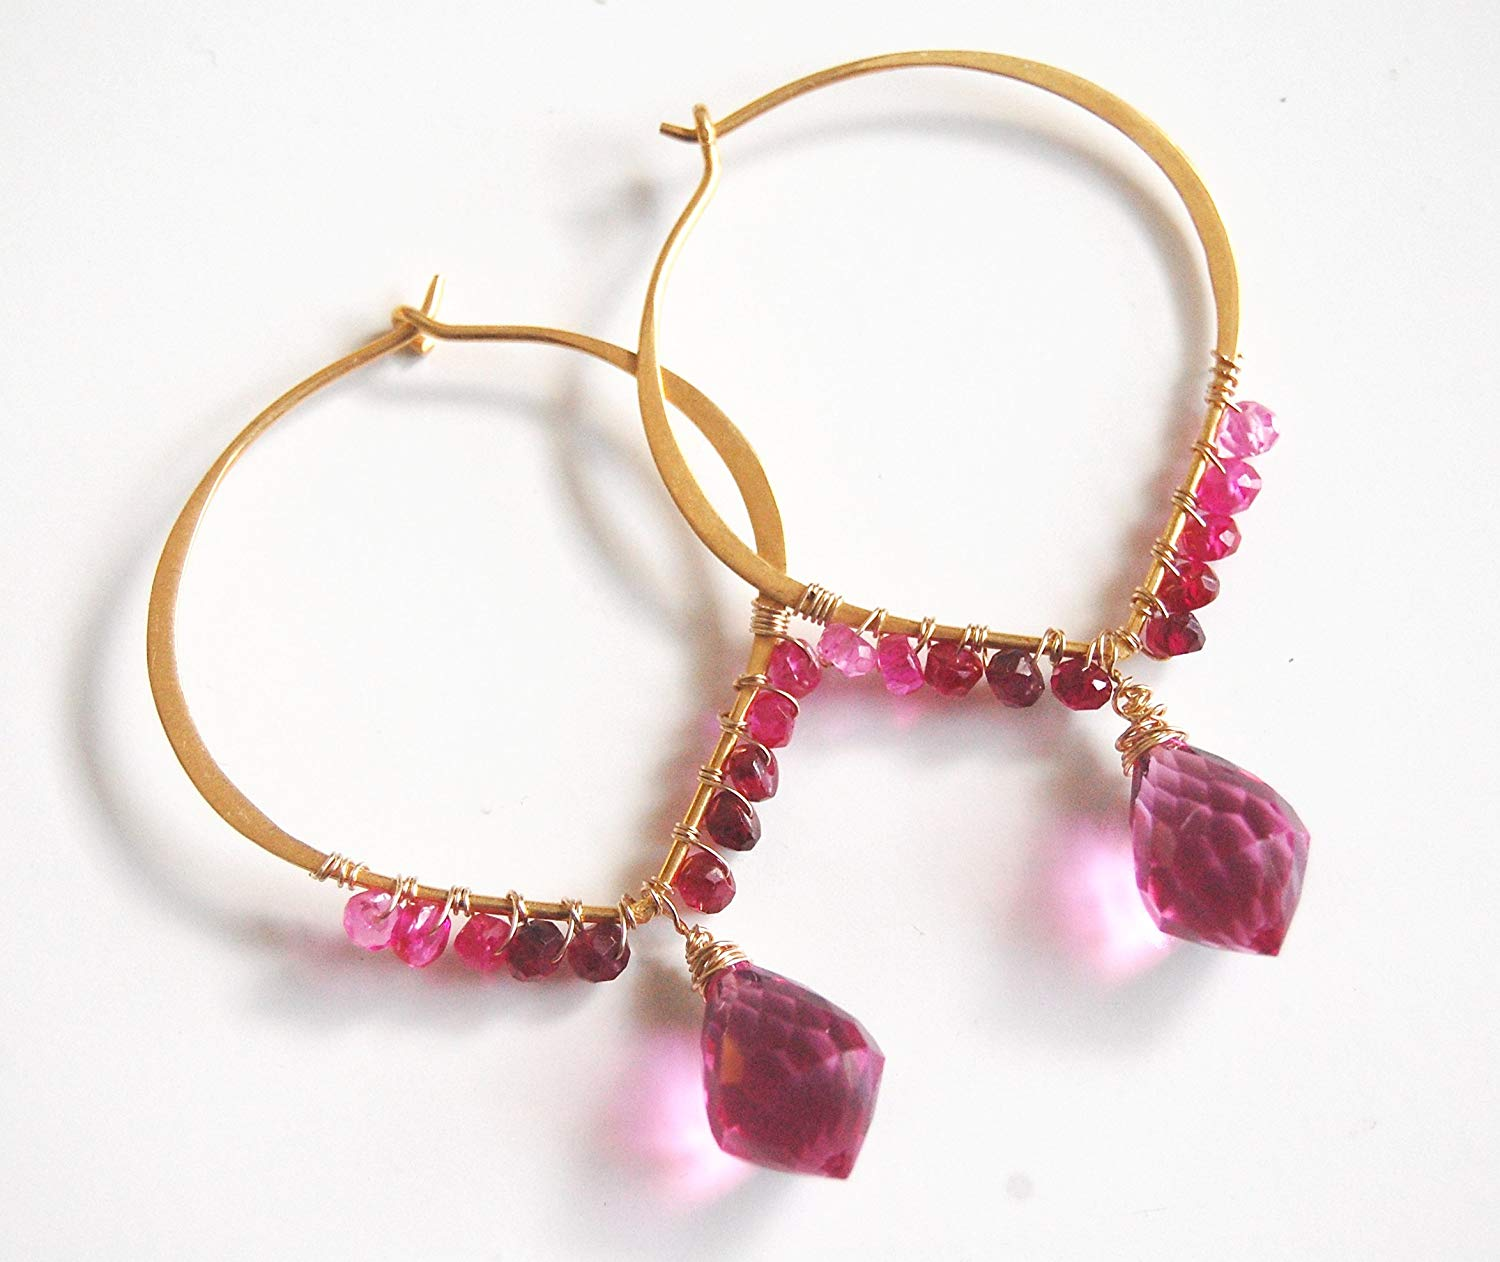 Hot Pink Quartz and Shaded Ruby Hoop Chandelier Earrings-Ruby Hoop Earrings - July Birthstone Hoop Earrings -